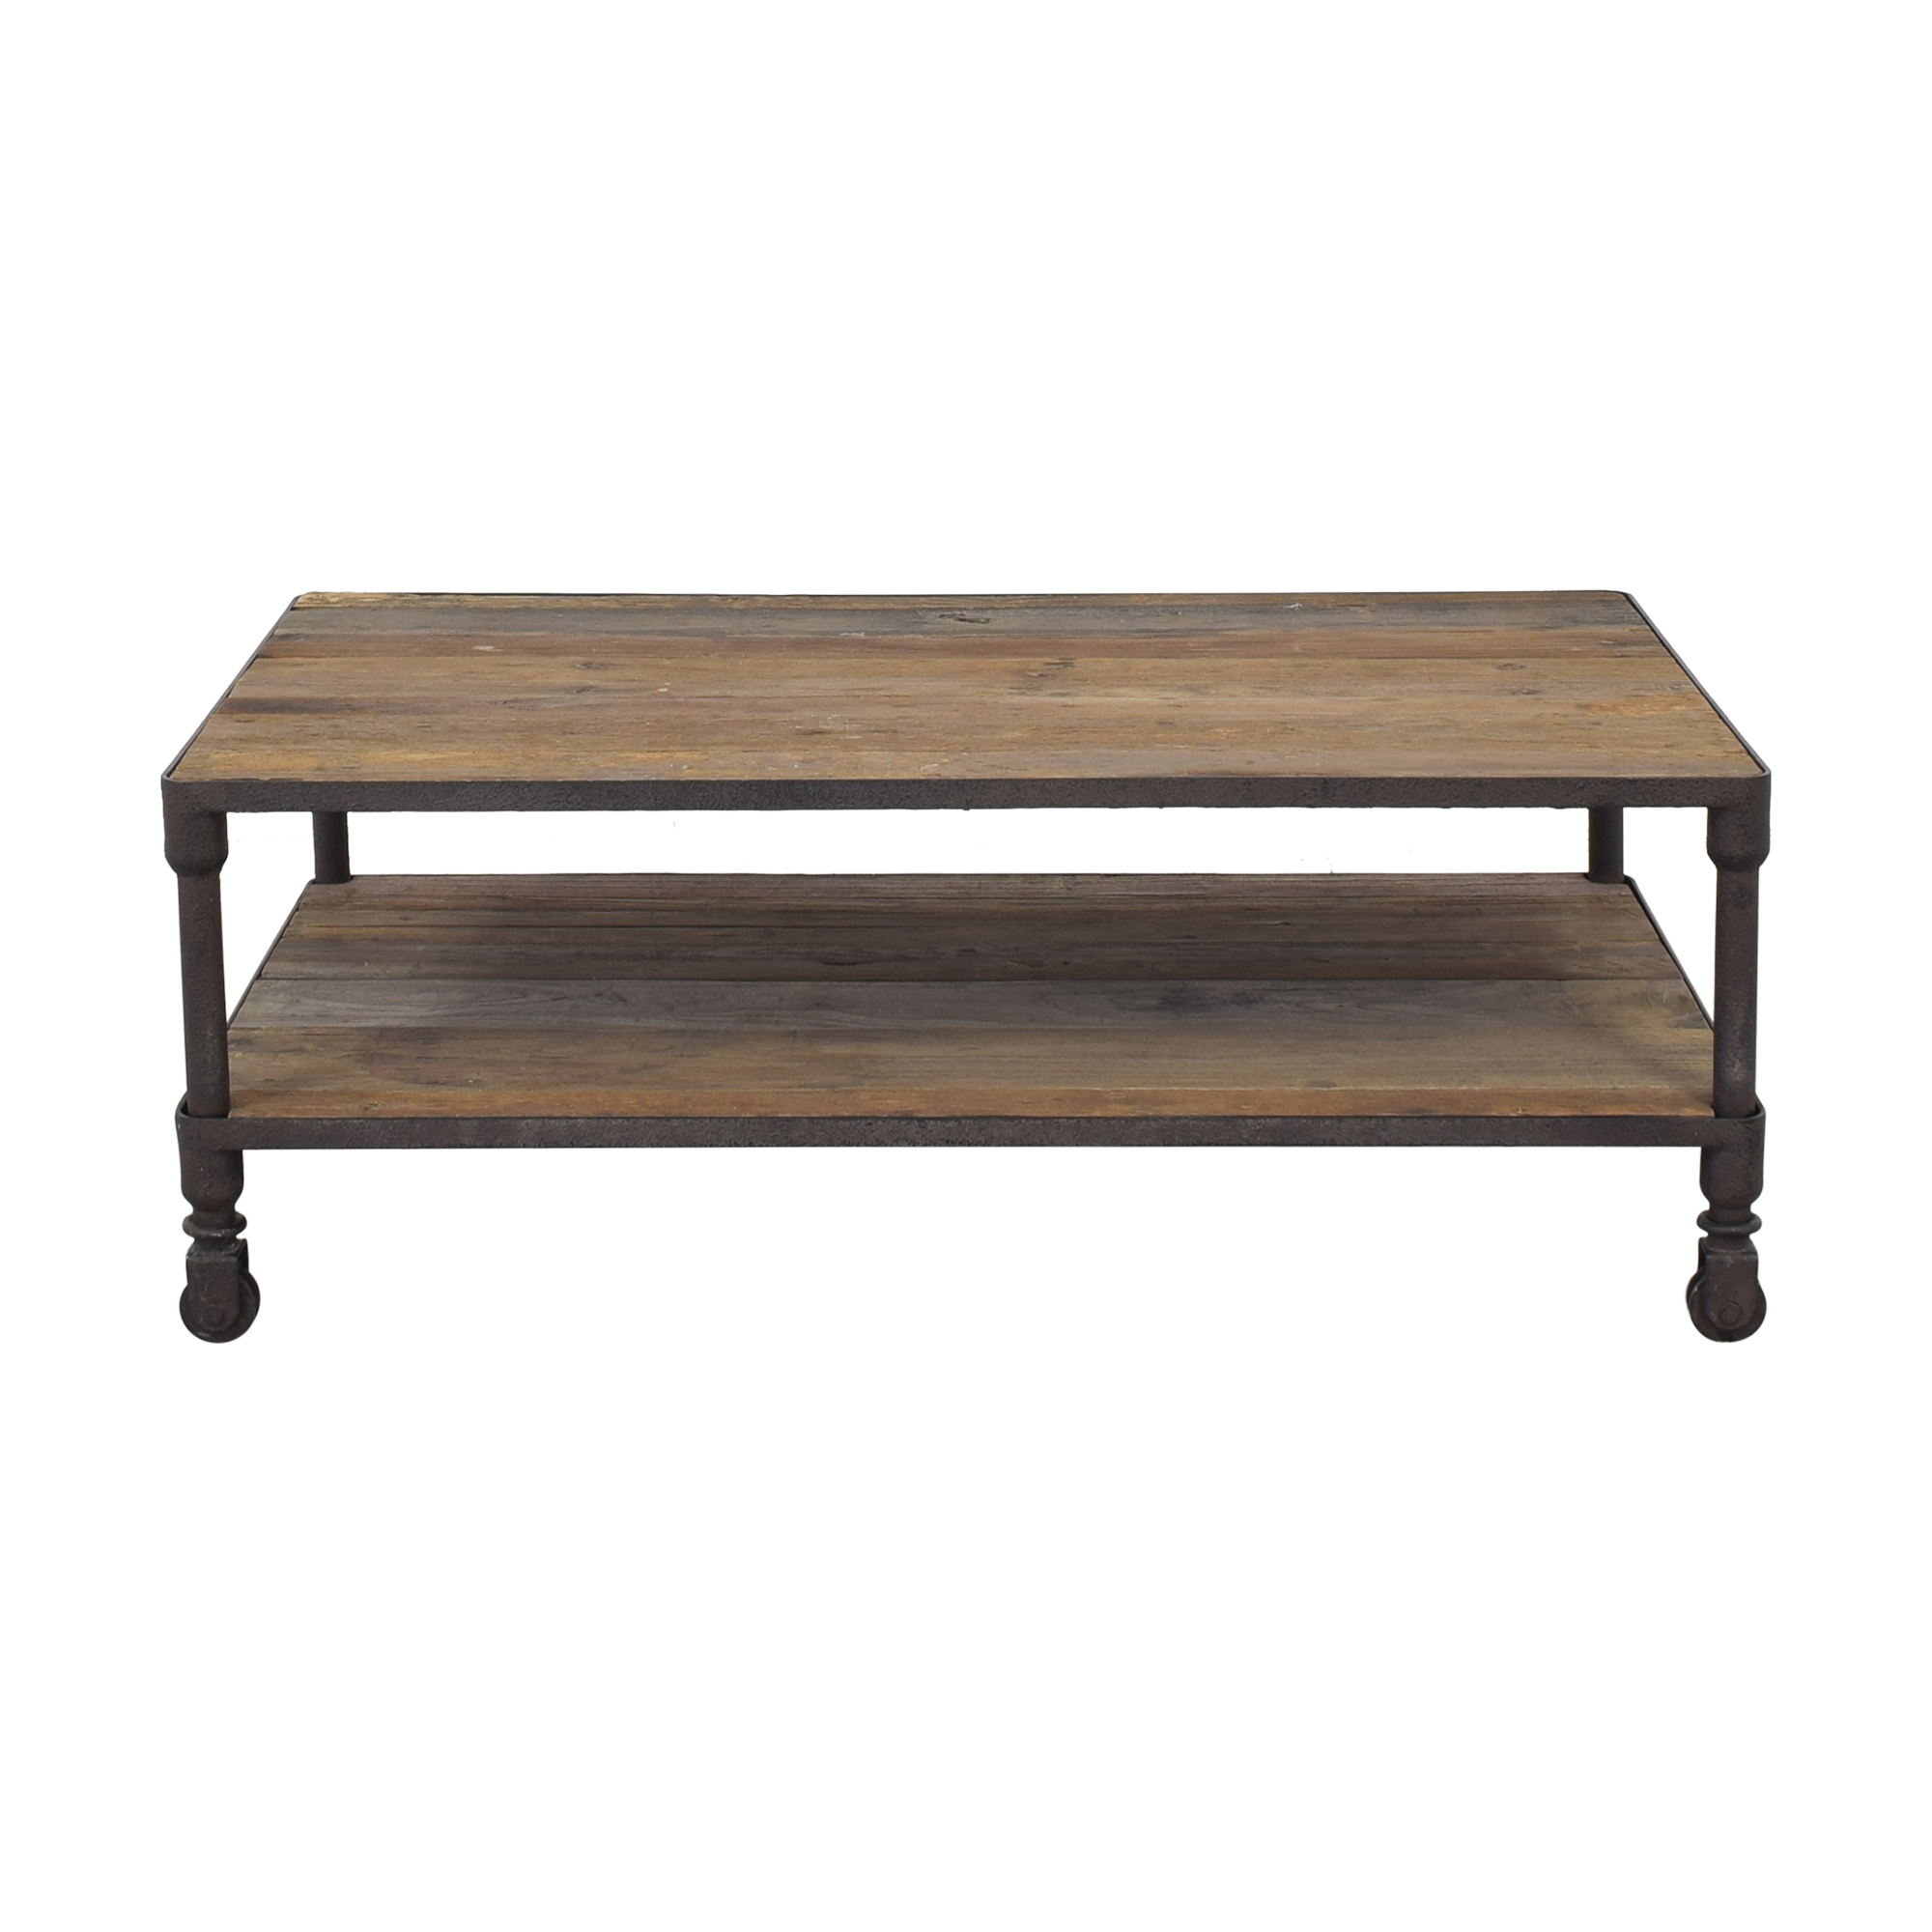 shop Restoration Hardware Dutch Industrial Coffee Table Restoration Hardware Tables